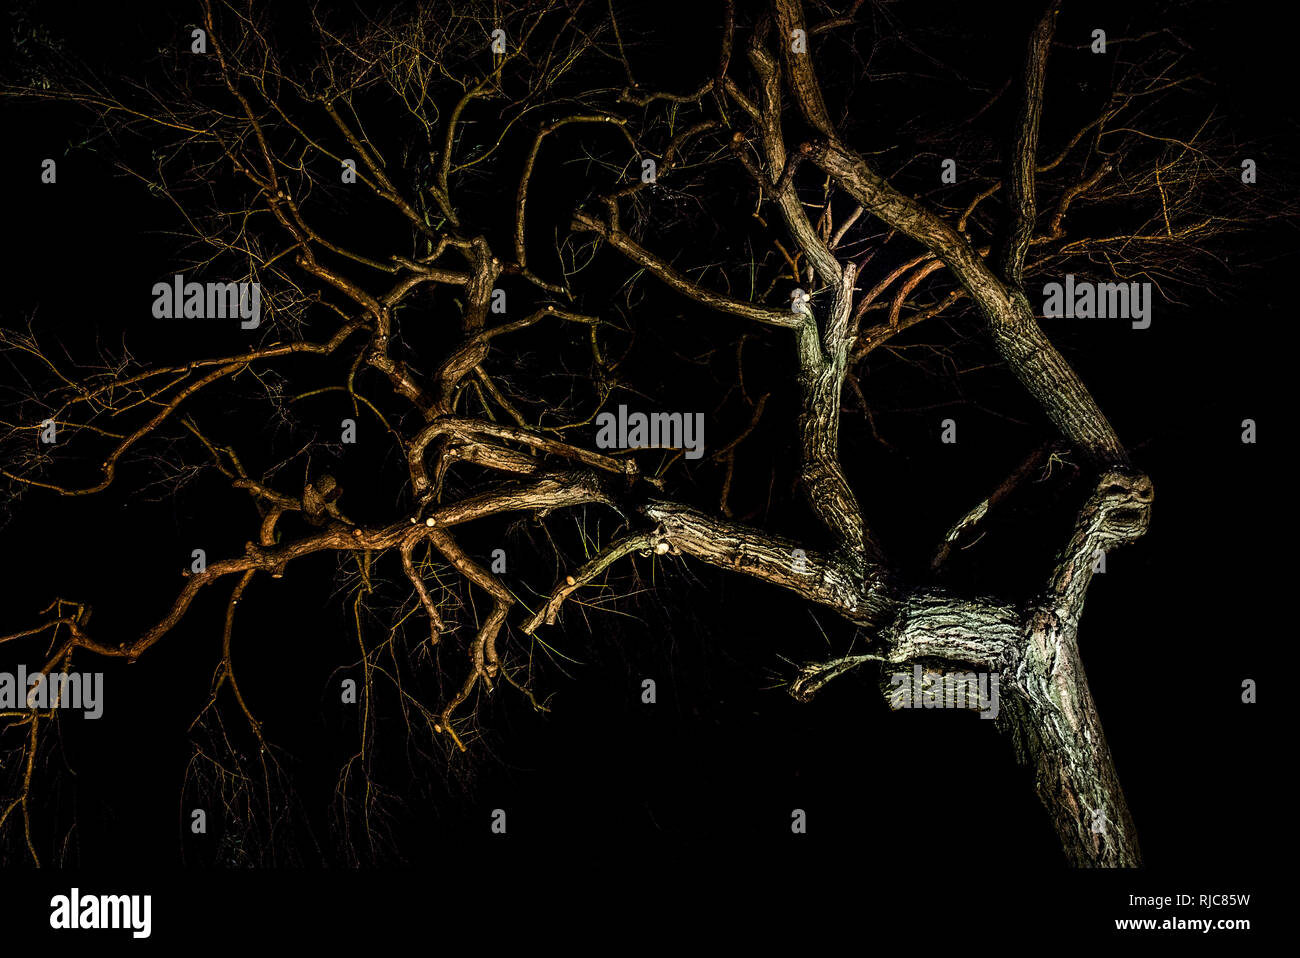 tree illuminated from below night shot - Stock Image